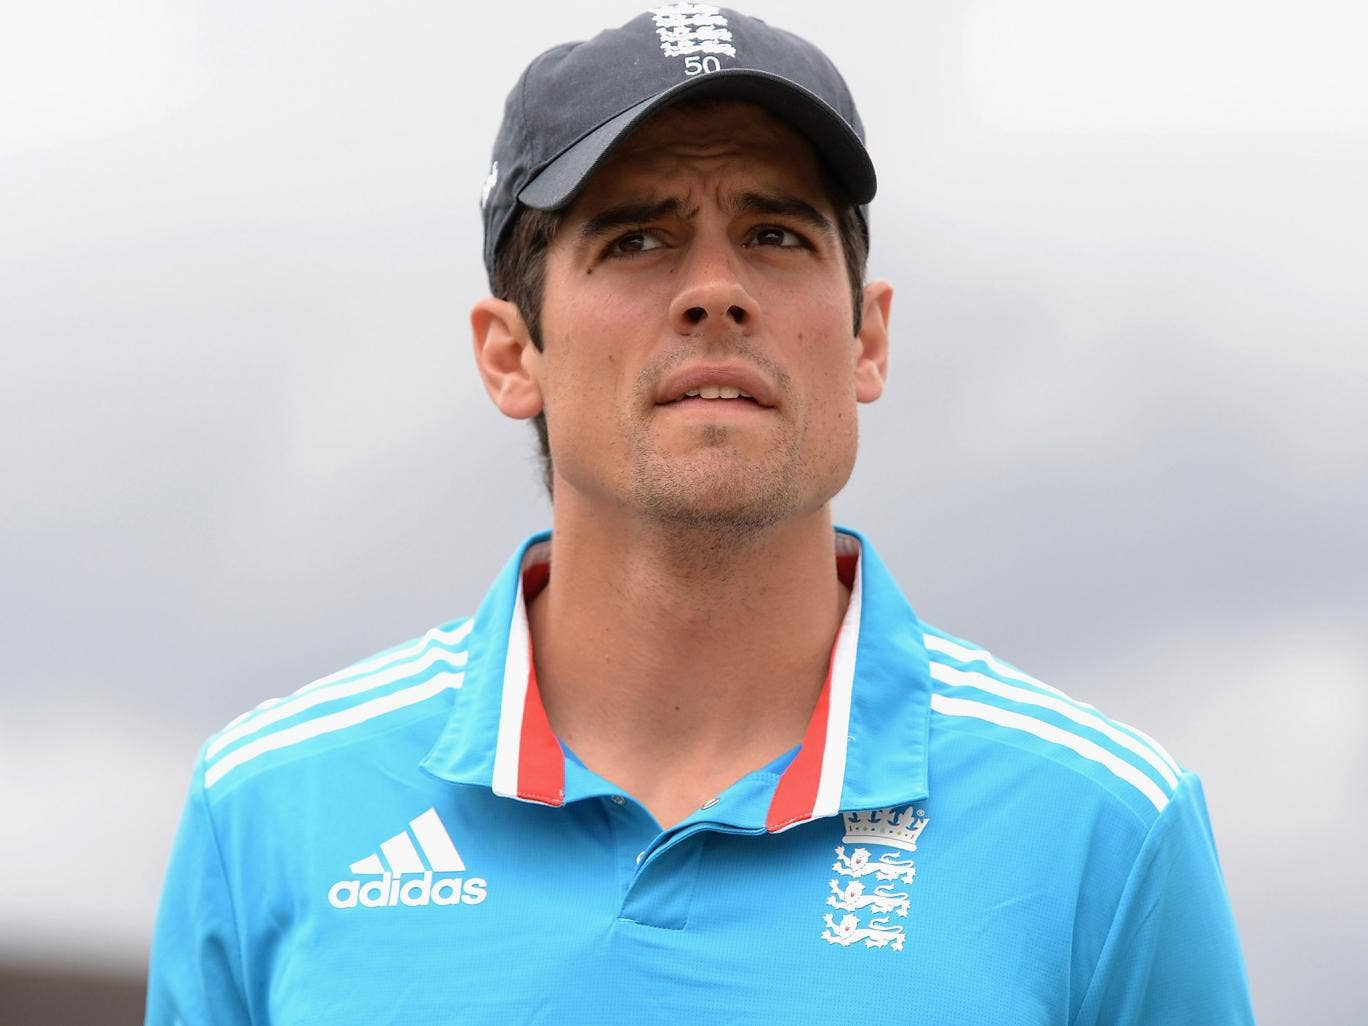 Alastair Cook's ODI record is widely underappreciated